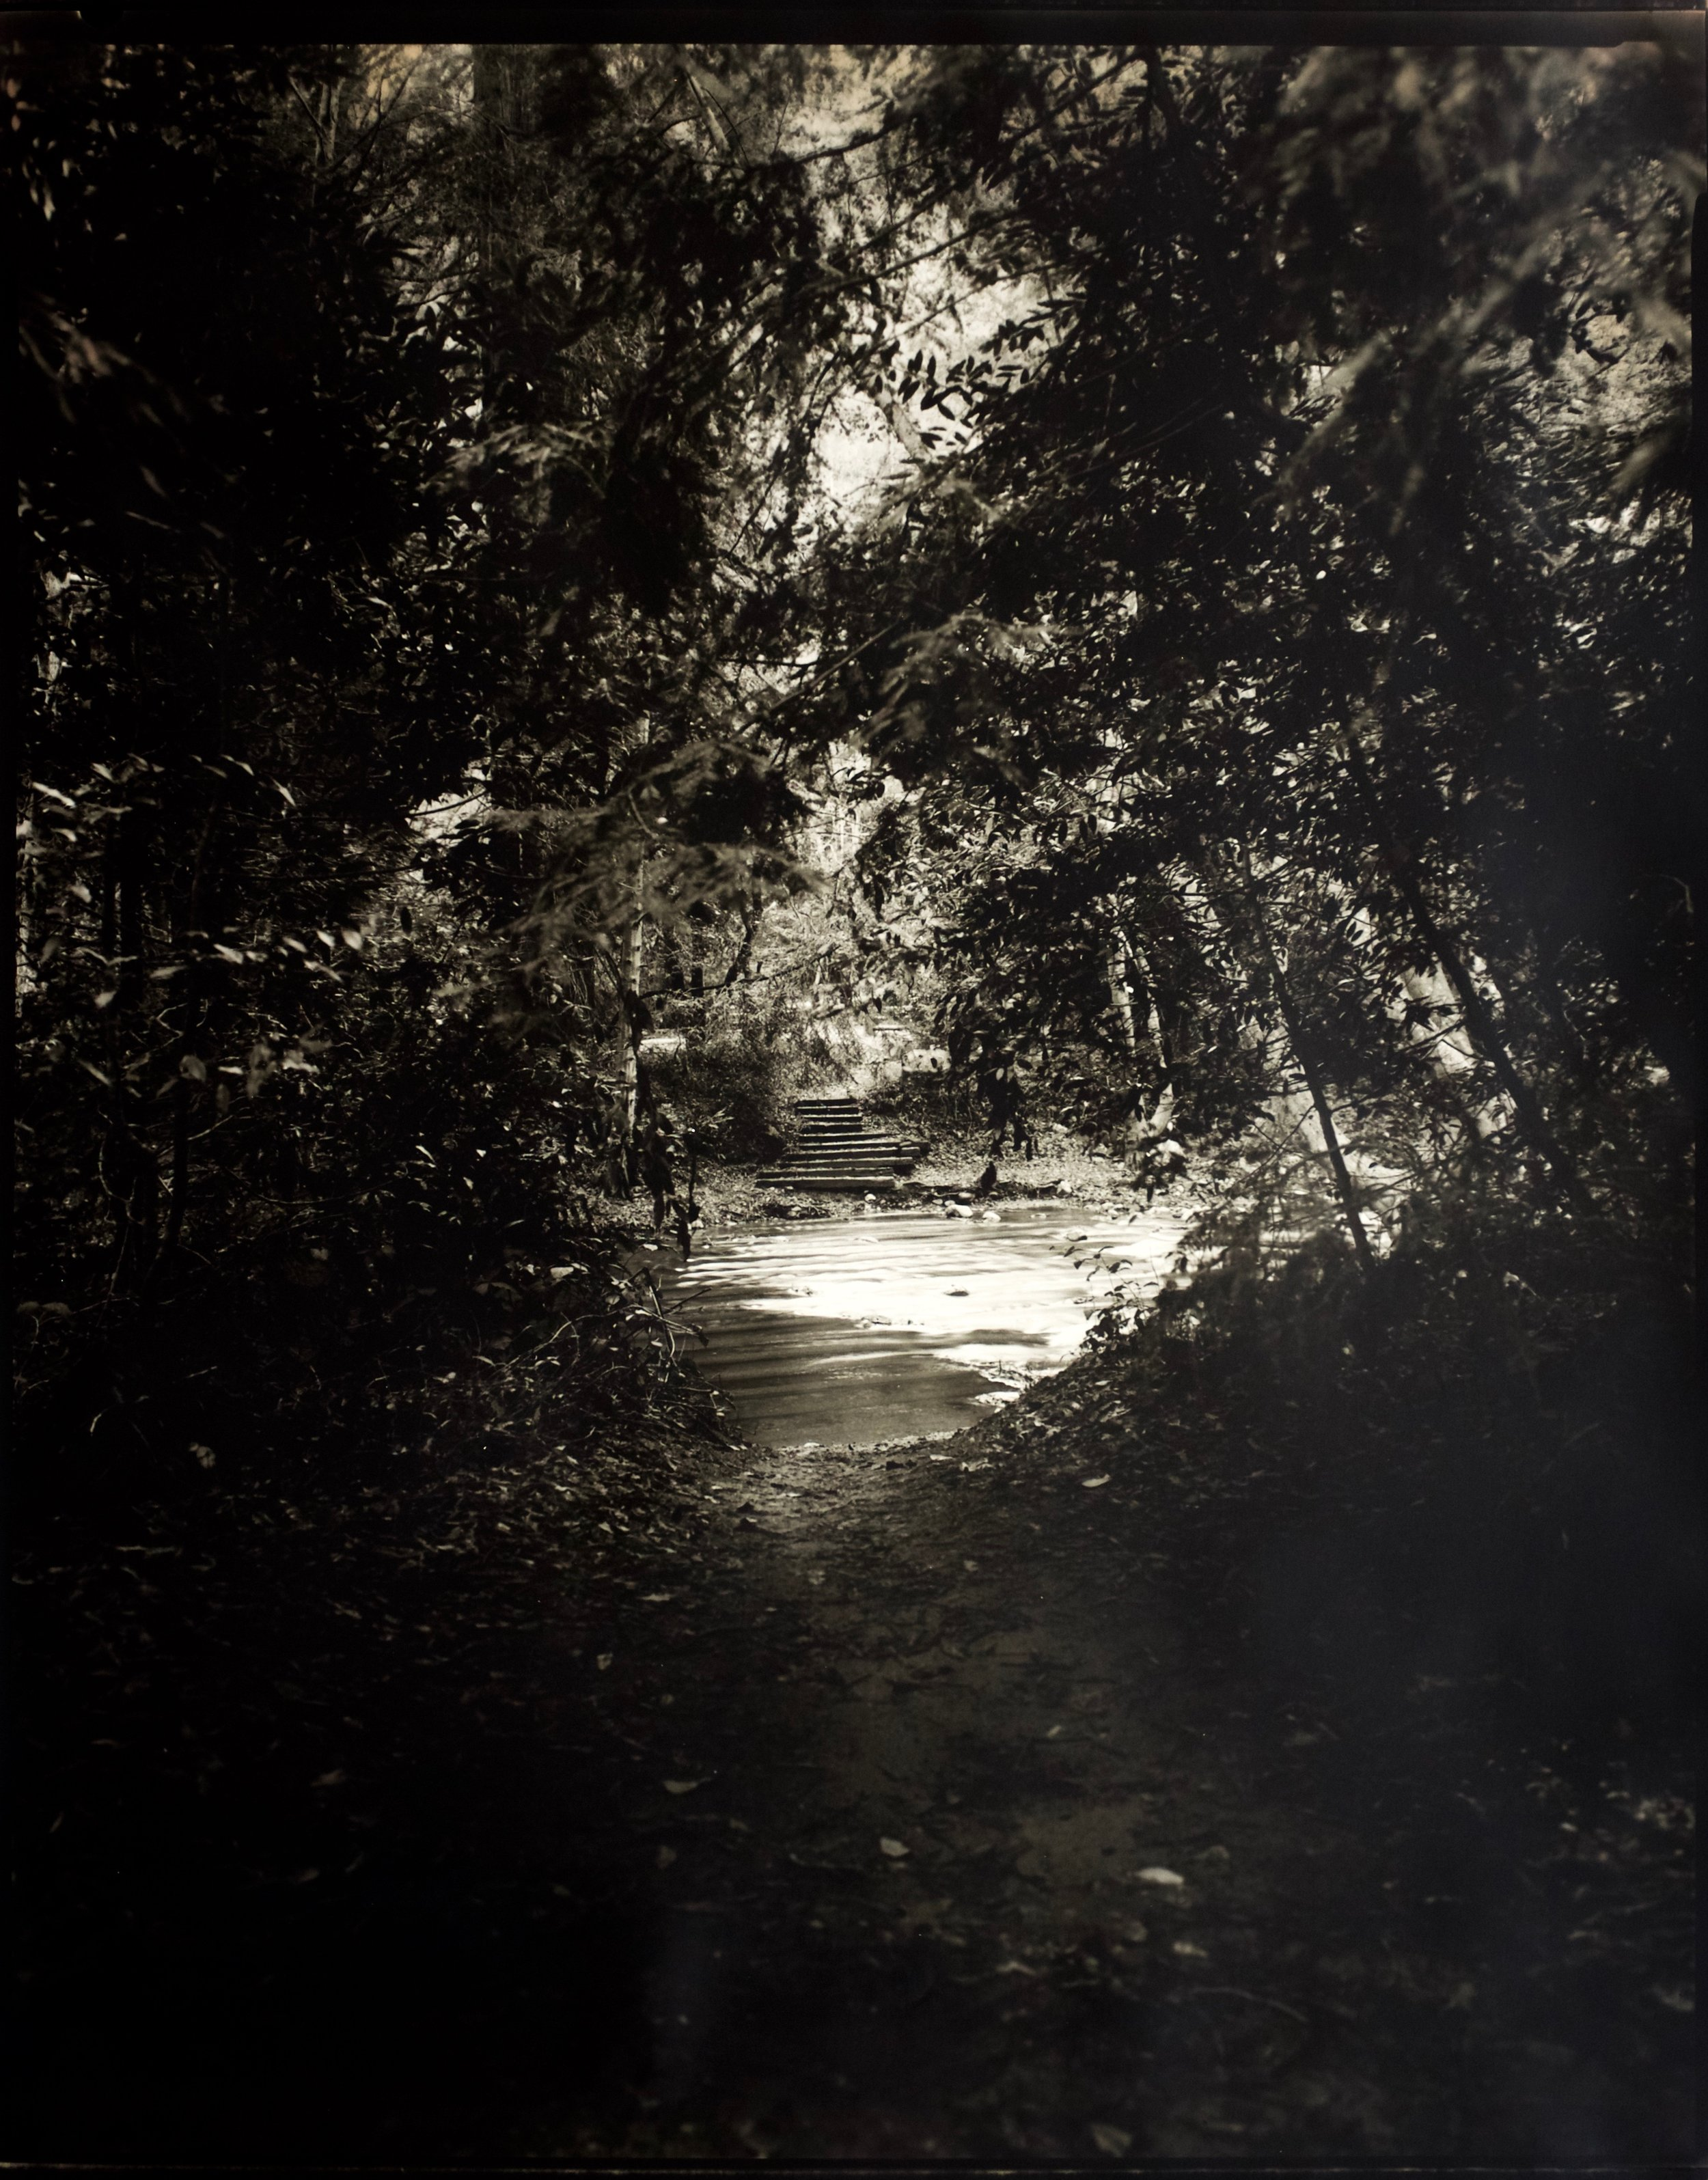 Crossing Over,  50 in. x 41 in., collodian negative hand printed on Ilford paper, 2018.